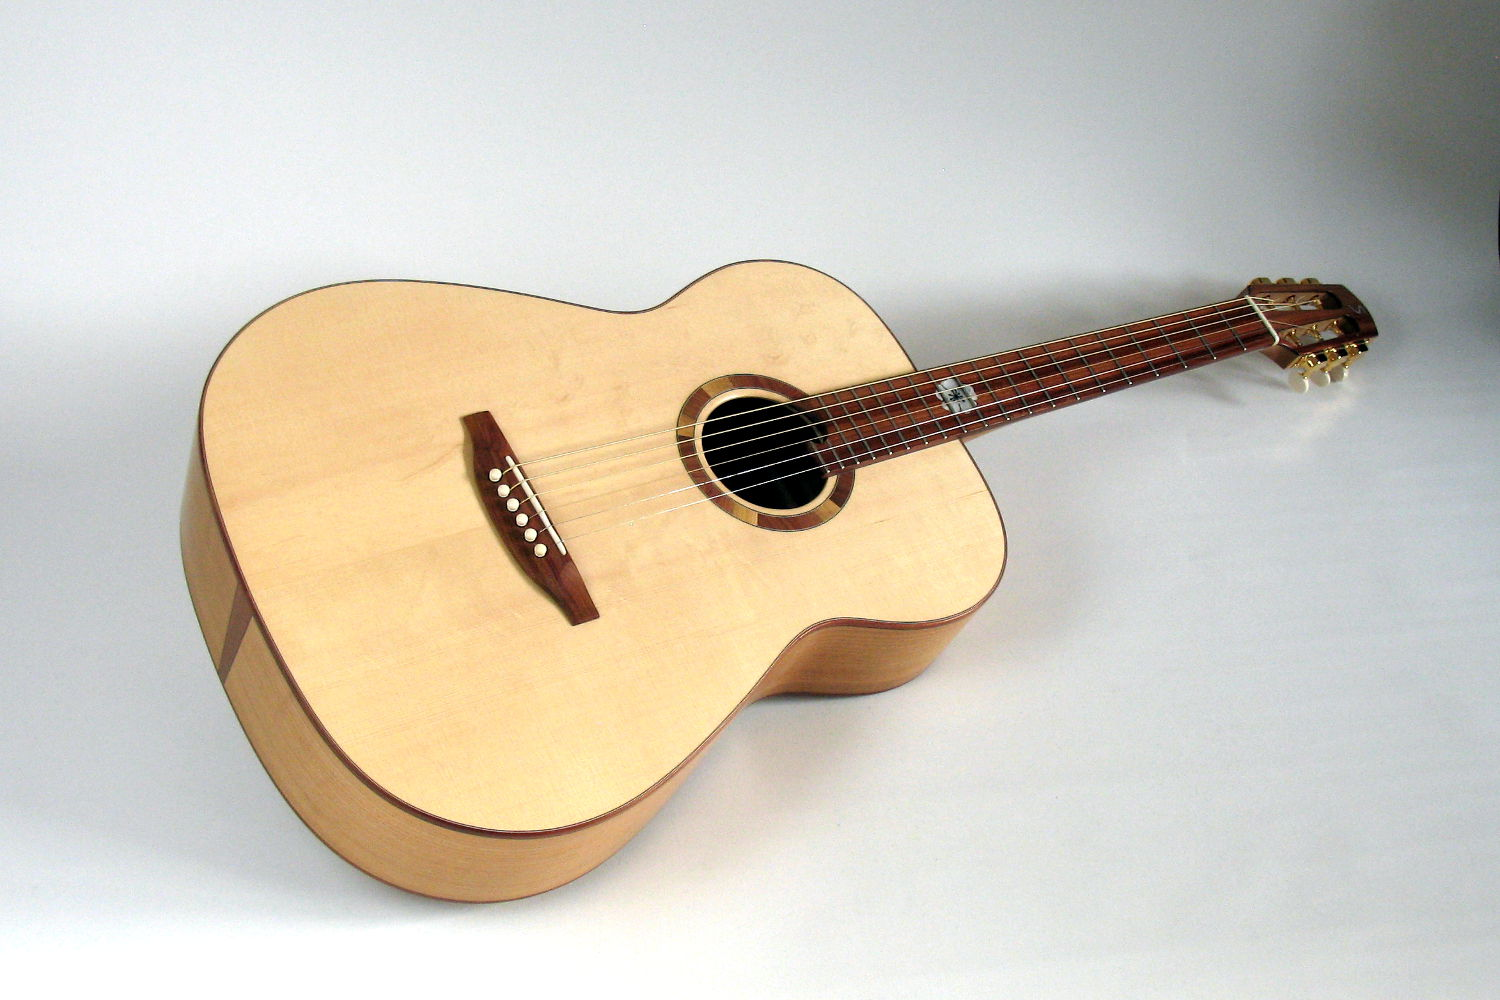 local wood steel string ambition fingerstyle cherry spruce plum stoll guitars. Black Bedroom Furniture Sets. Home Design Ideas